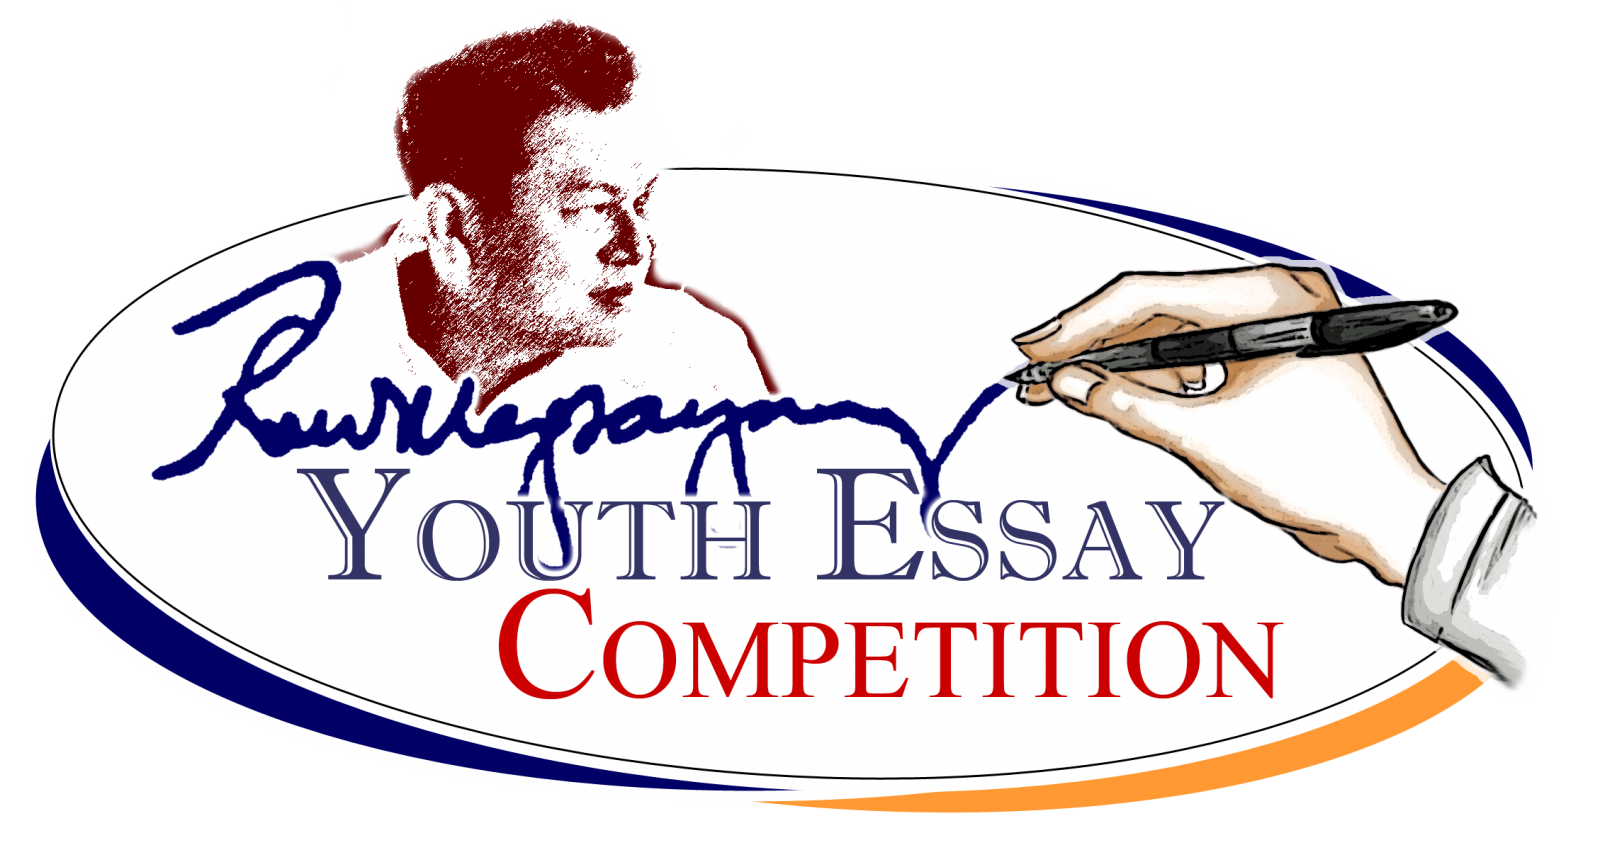 Essay writing competitions for money